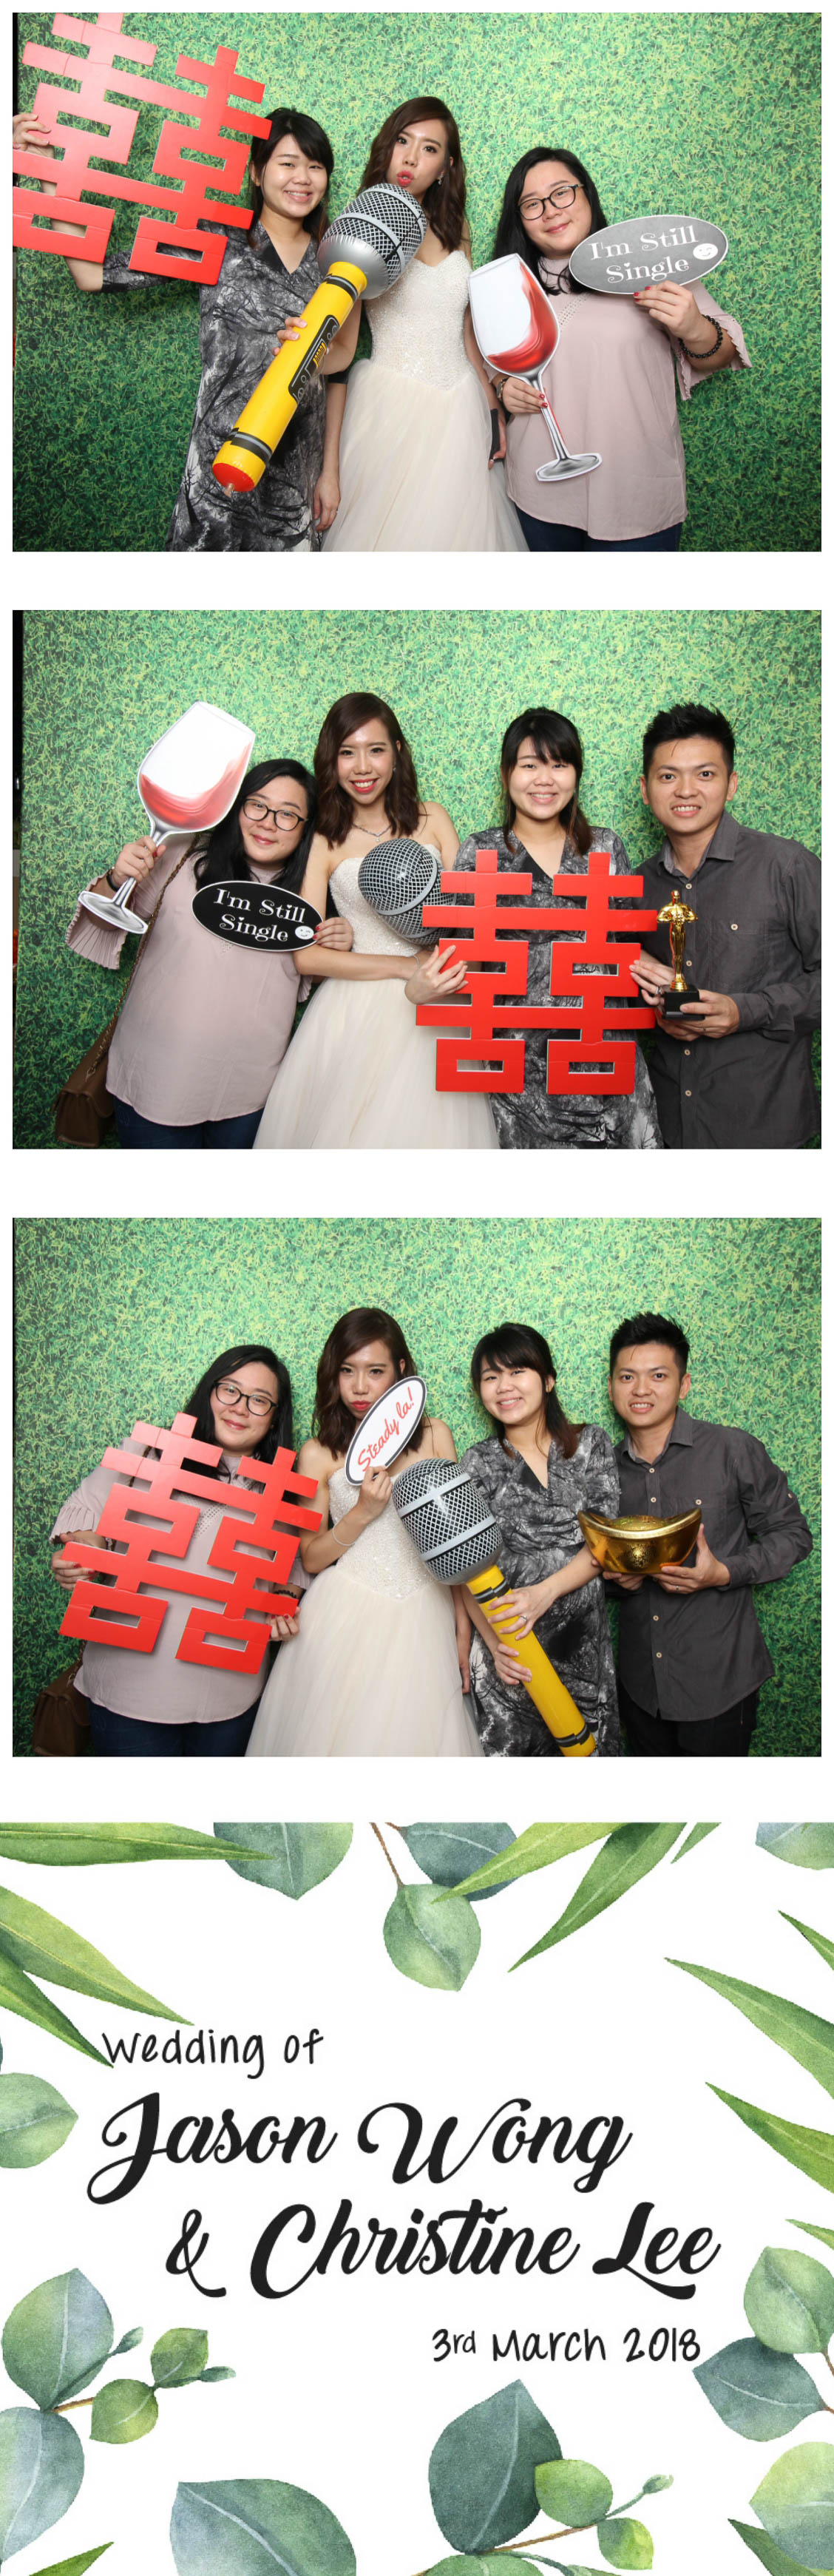 Photobooth 0302-6